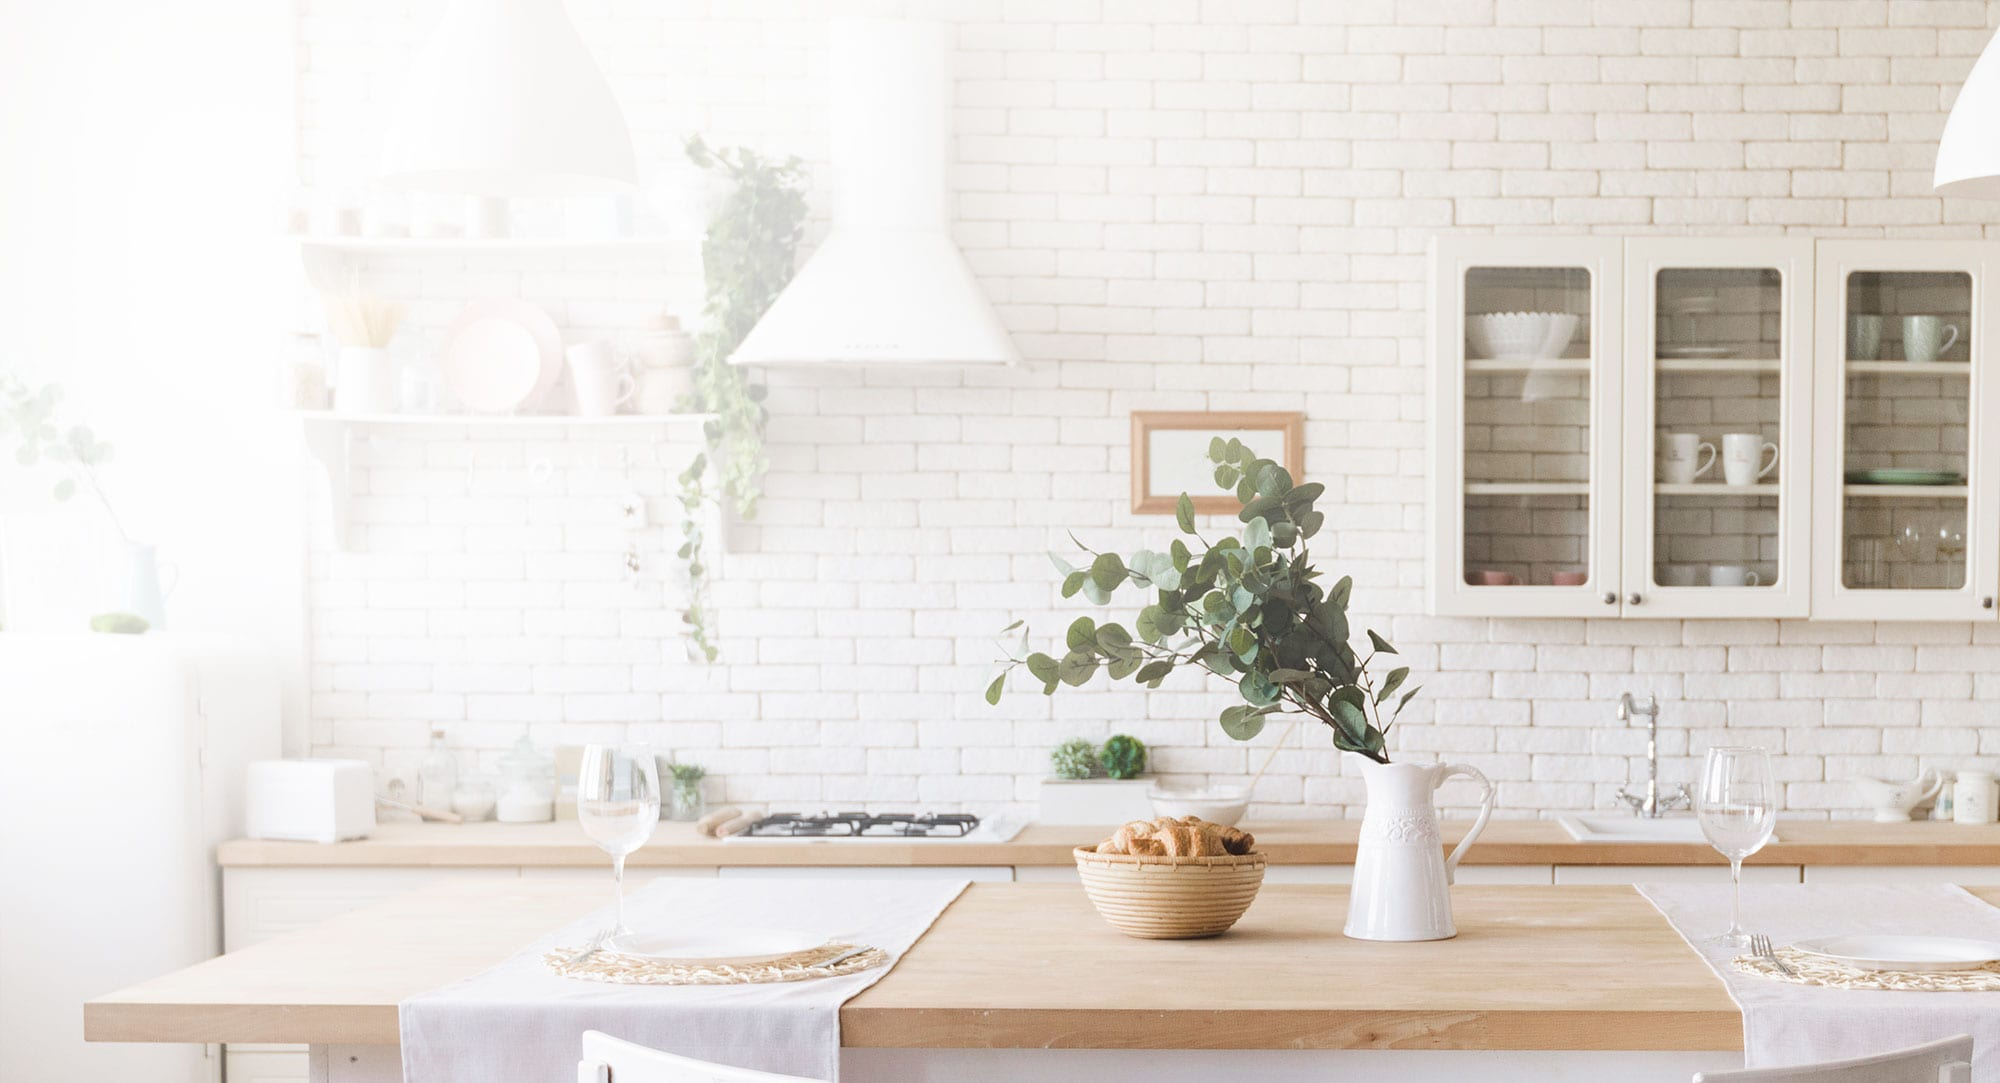 Professional-Cleaning-Service-in--Adelaide-Kitchen-Photo